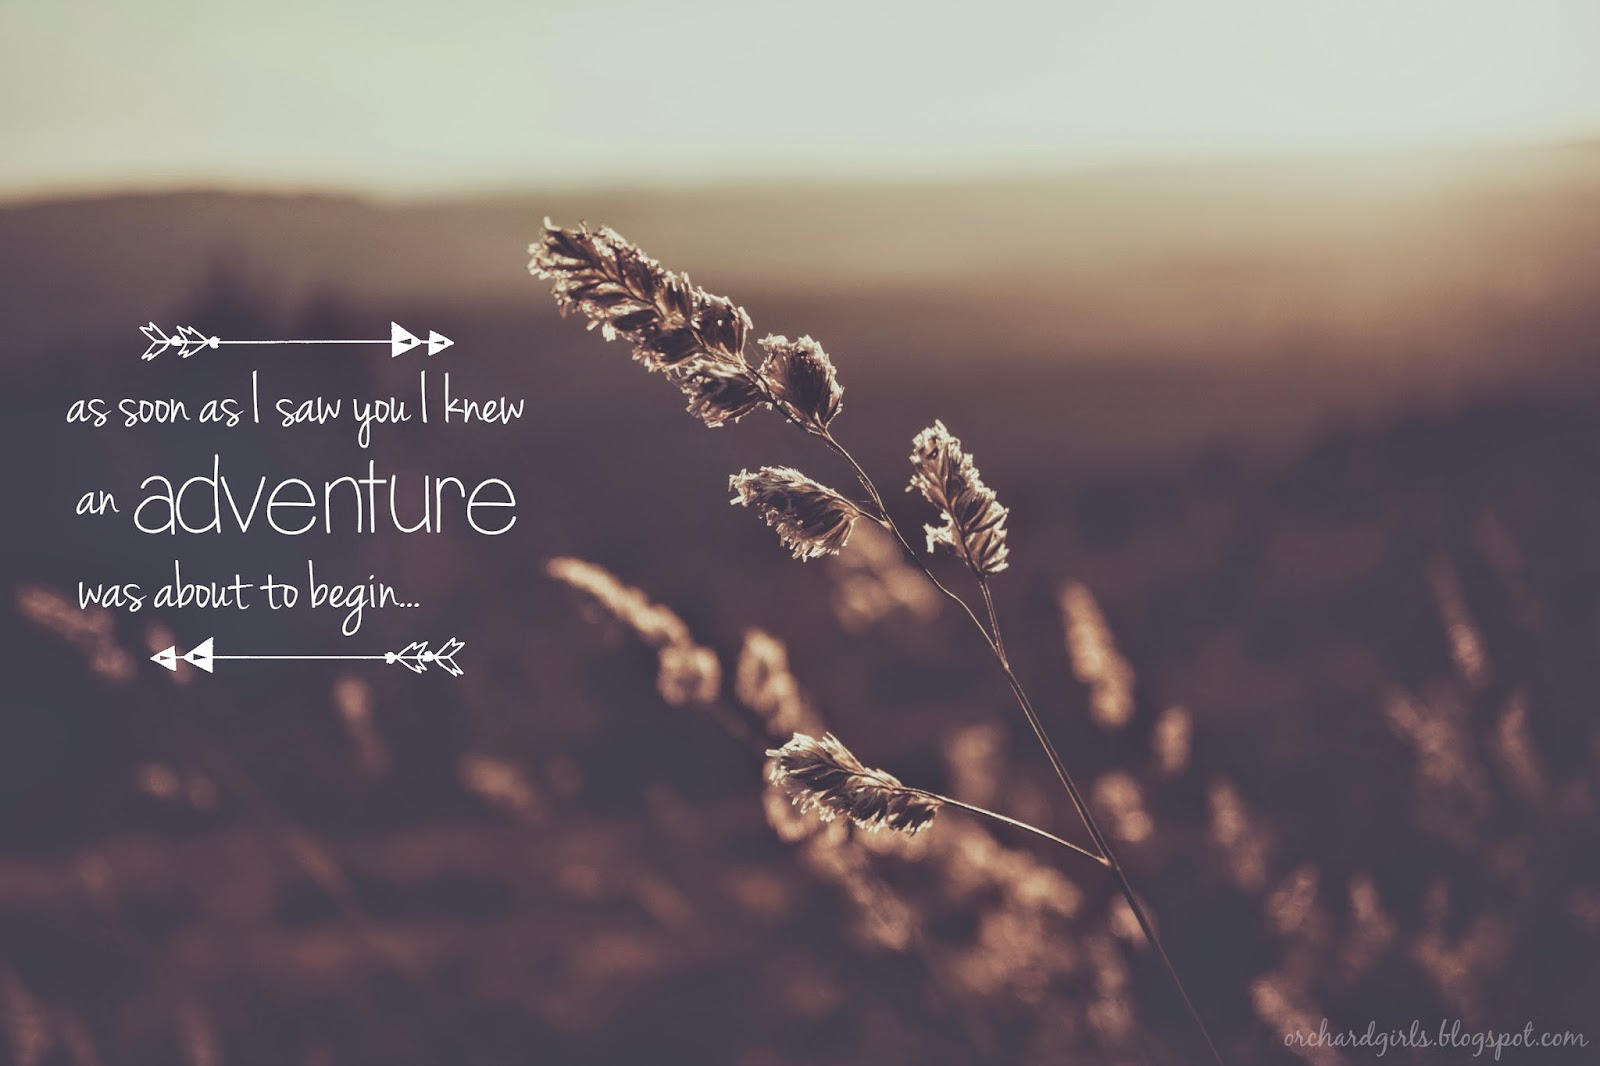 Adventure Quotes Quotesgram: Amazing Adventure Quotes. QuotesGram